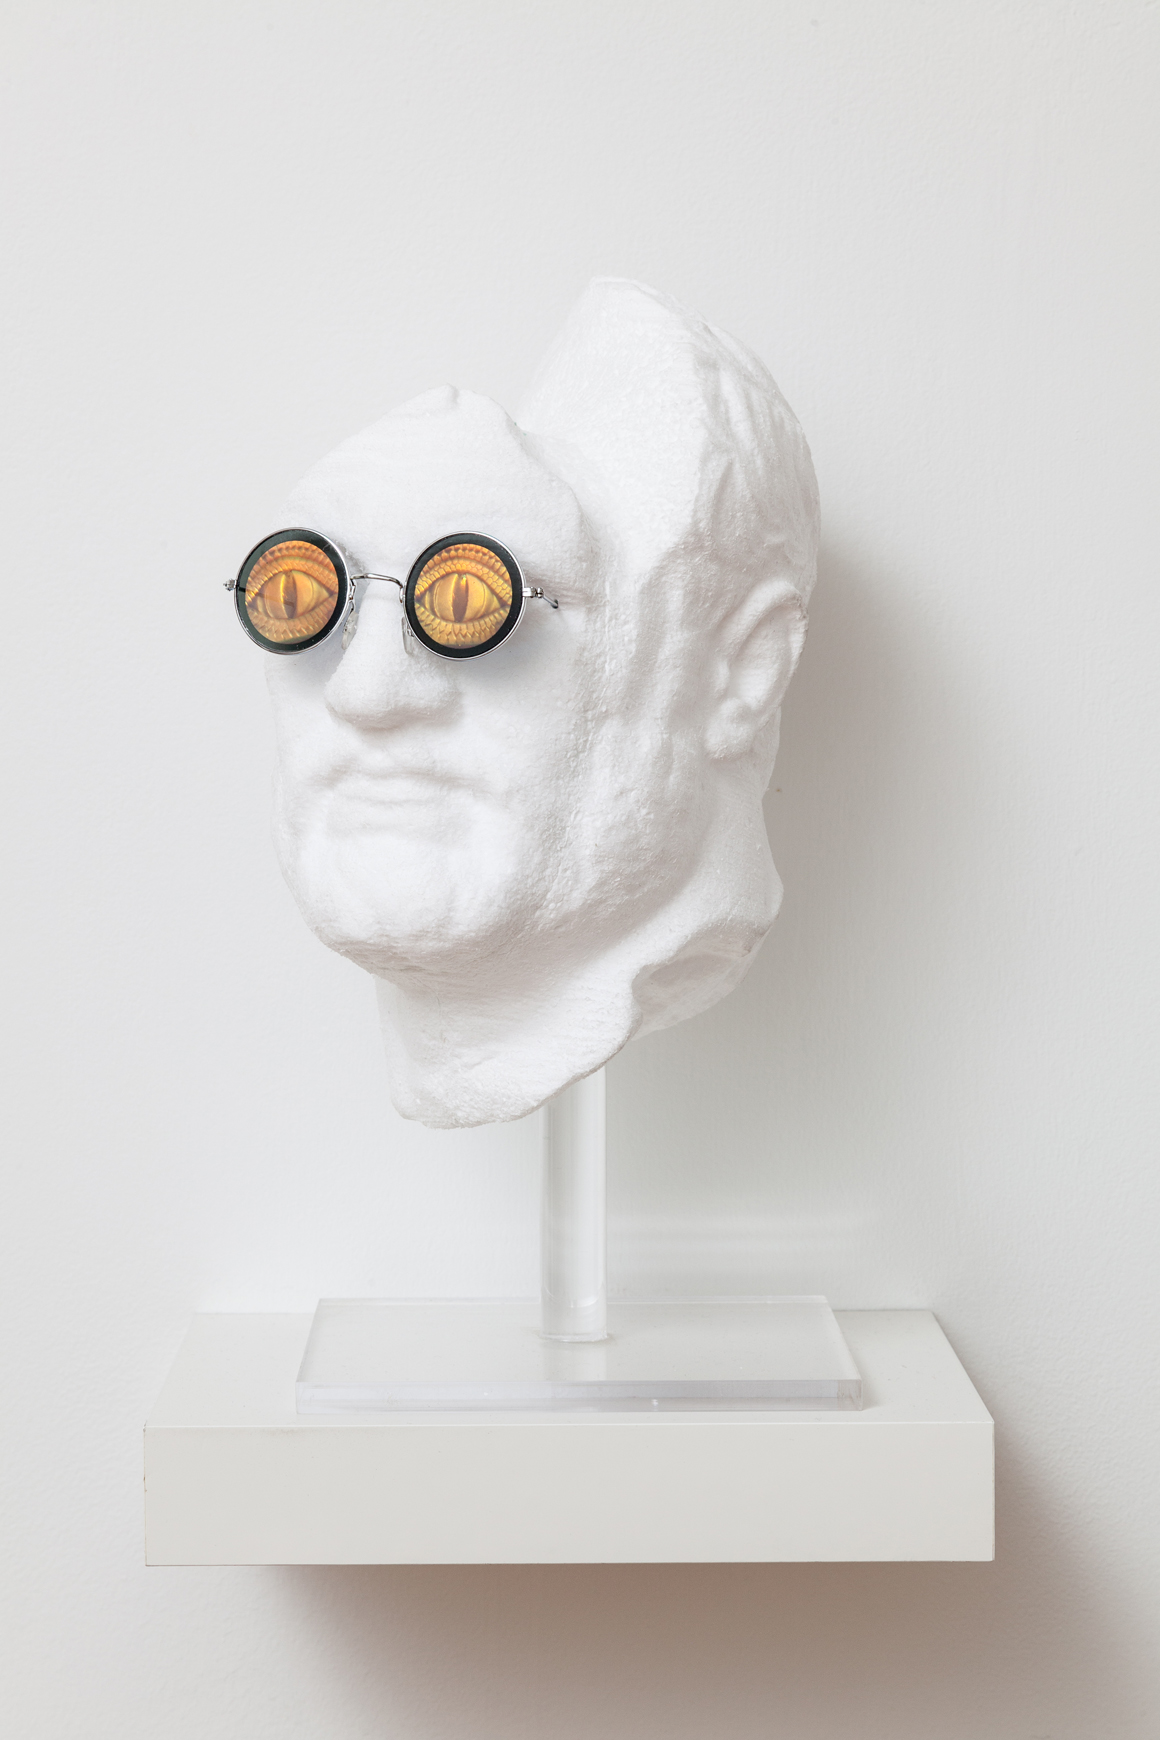 <p><em>Untitled (head)</em><span class='media'>Polystyrene, holographic sunglasses</span>16 x 9 x 9 in (40.6 x 22.9 x 22.9 cm)<br>2017<br><a class='inquire' href='mailto:info@gildargallery.com?subject=Artwork Inquiry DOBE0030&body=I am interested in finding out more about Untitled (head) by Dmitri Obergfell'>Inquire</a></p>